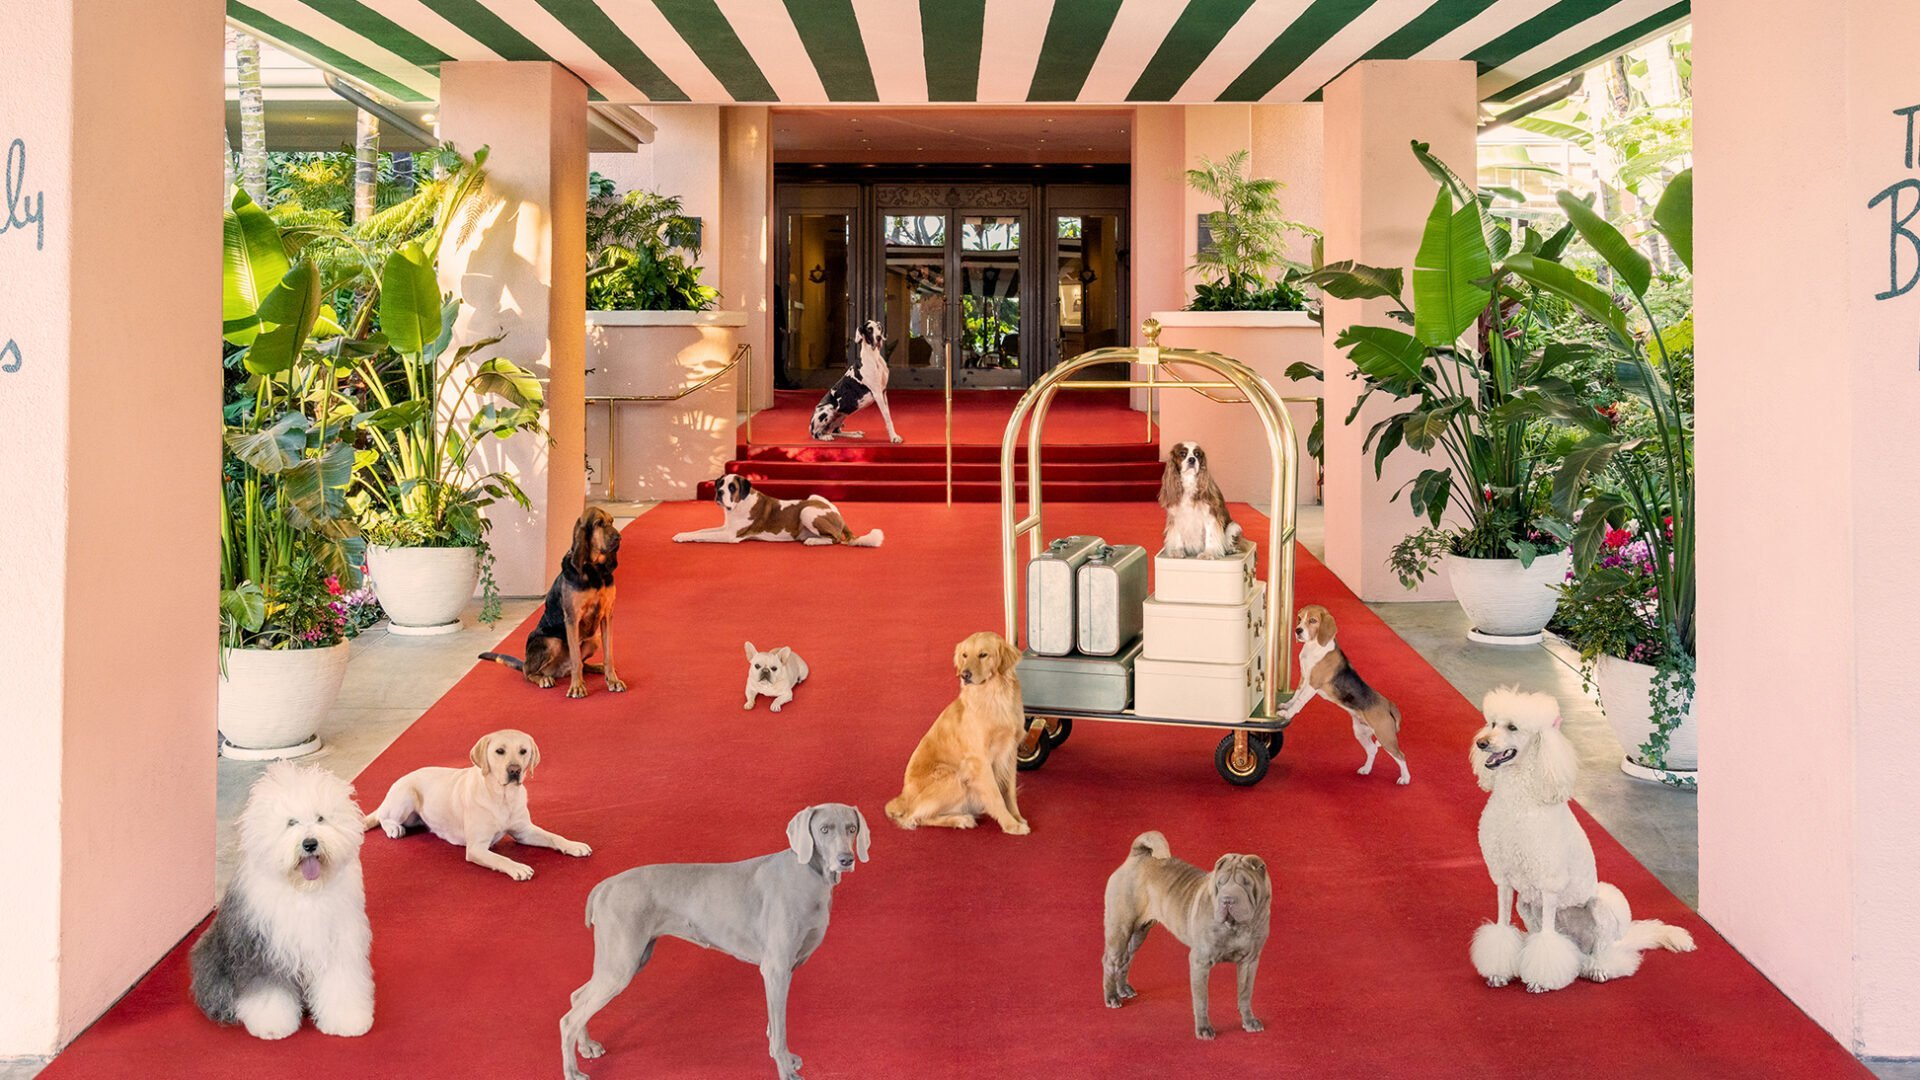 Staged dogs on the red carpet